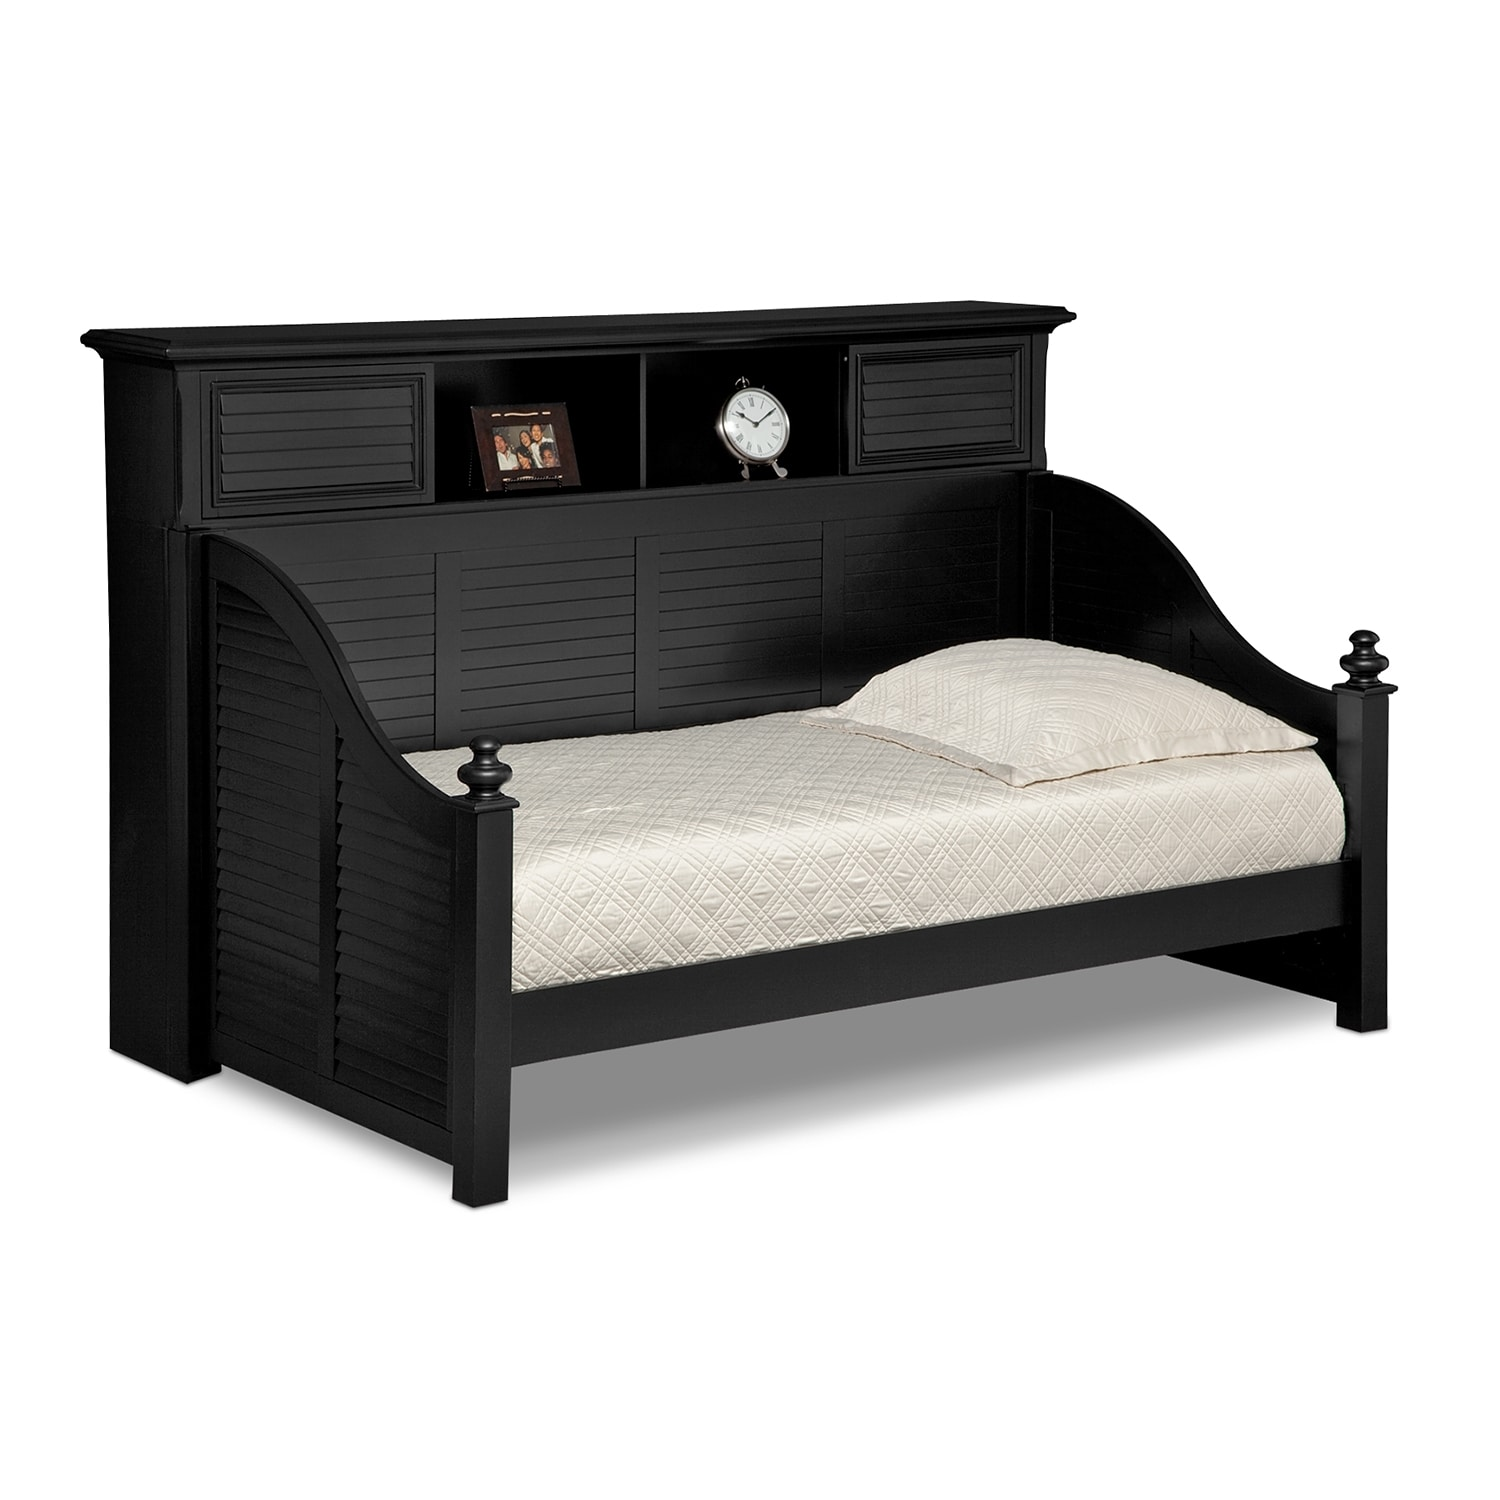 Seaside Black II Bookcase Daybed